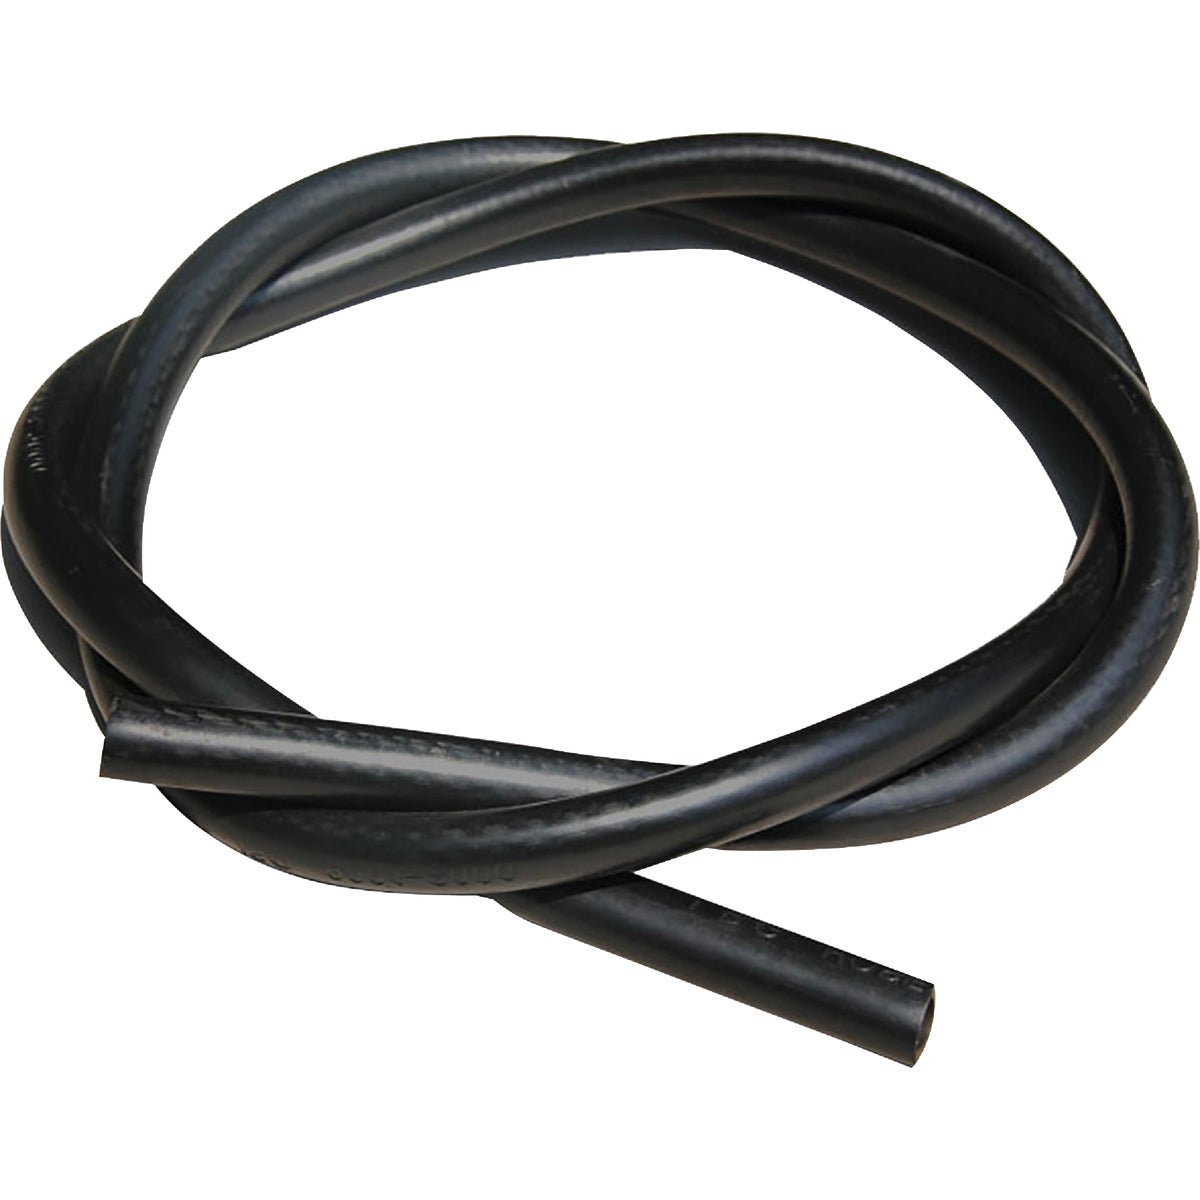 WASH MACHINE DRAIN HOSE - 441902 by Wm H Harvey Co